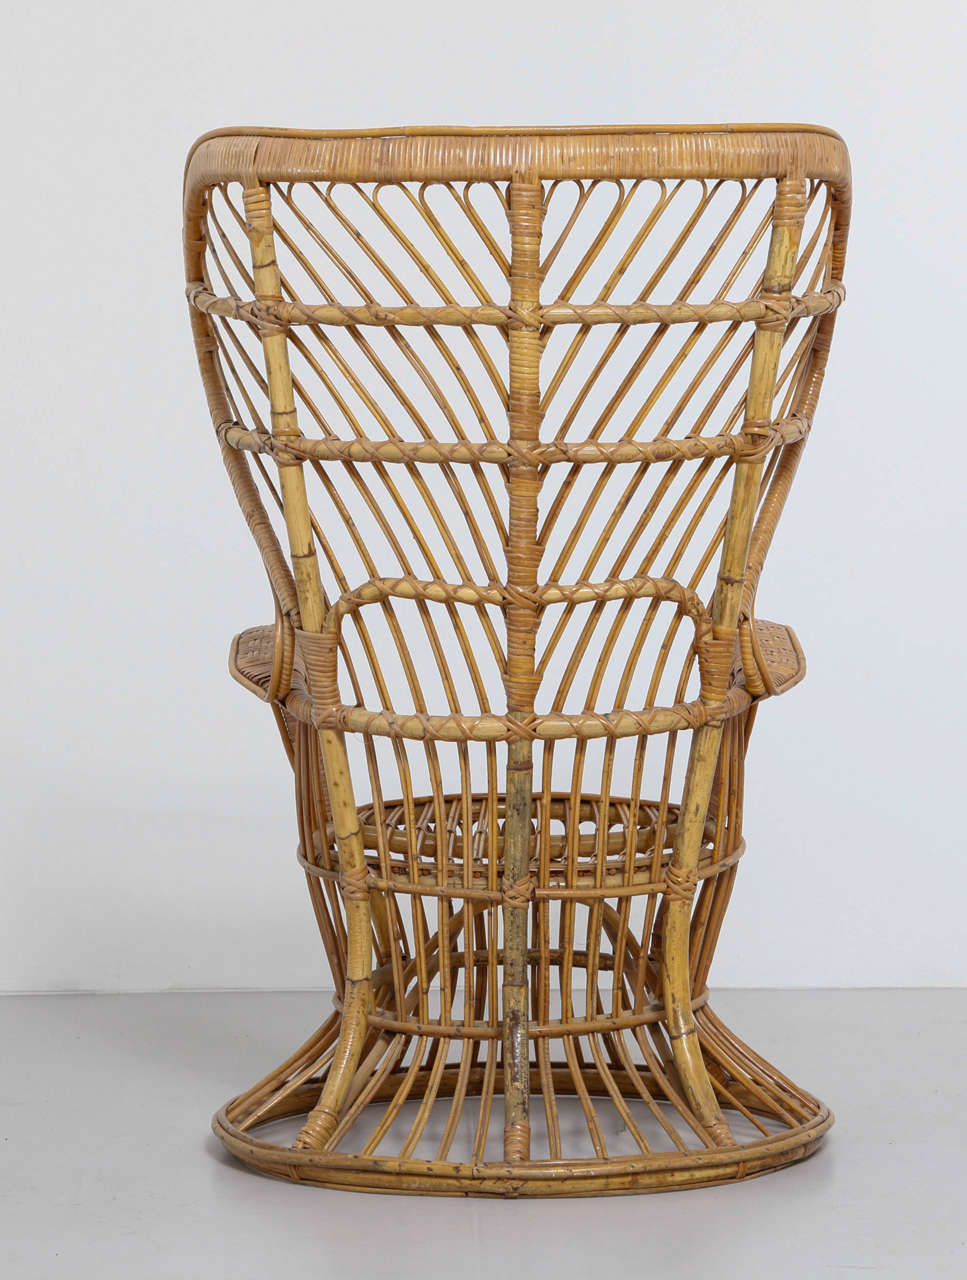 High Rattan Wingback Chair Designed by Lio Carminati and